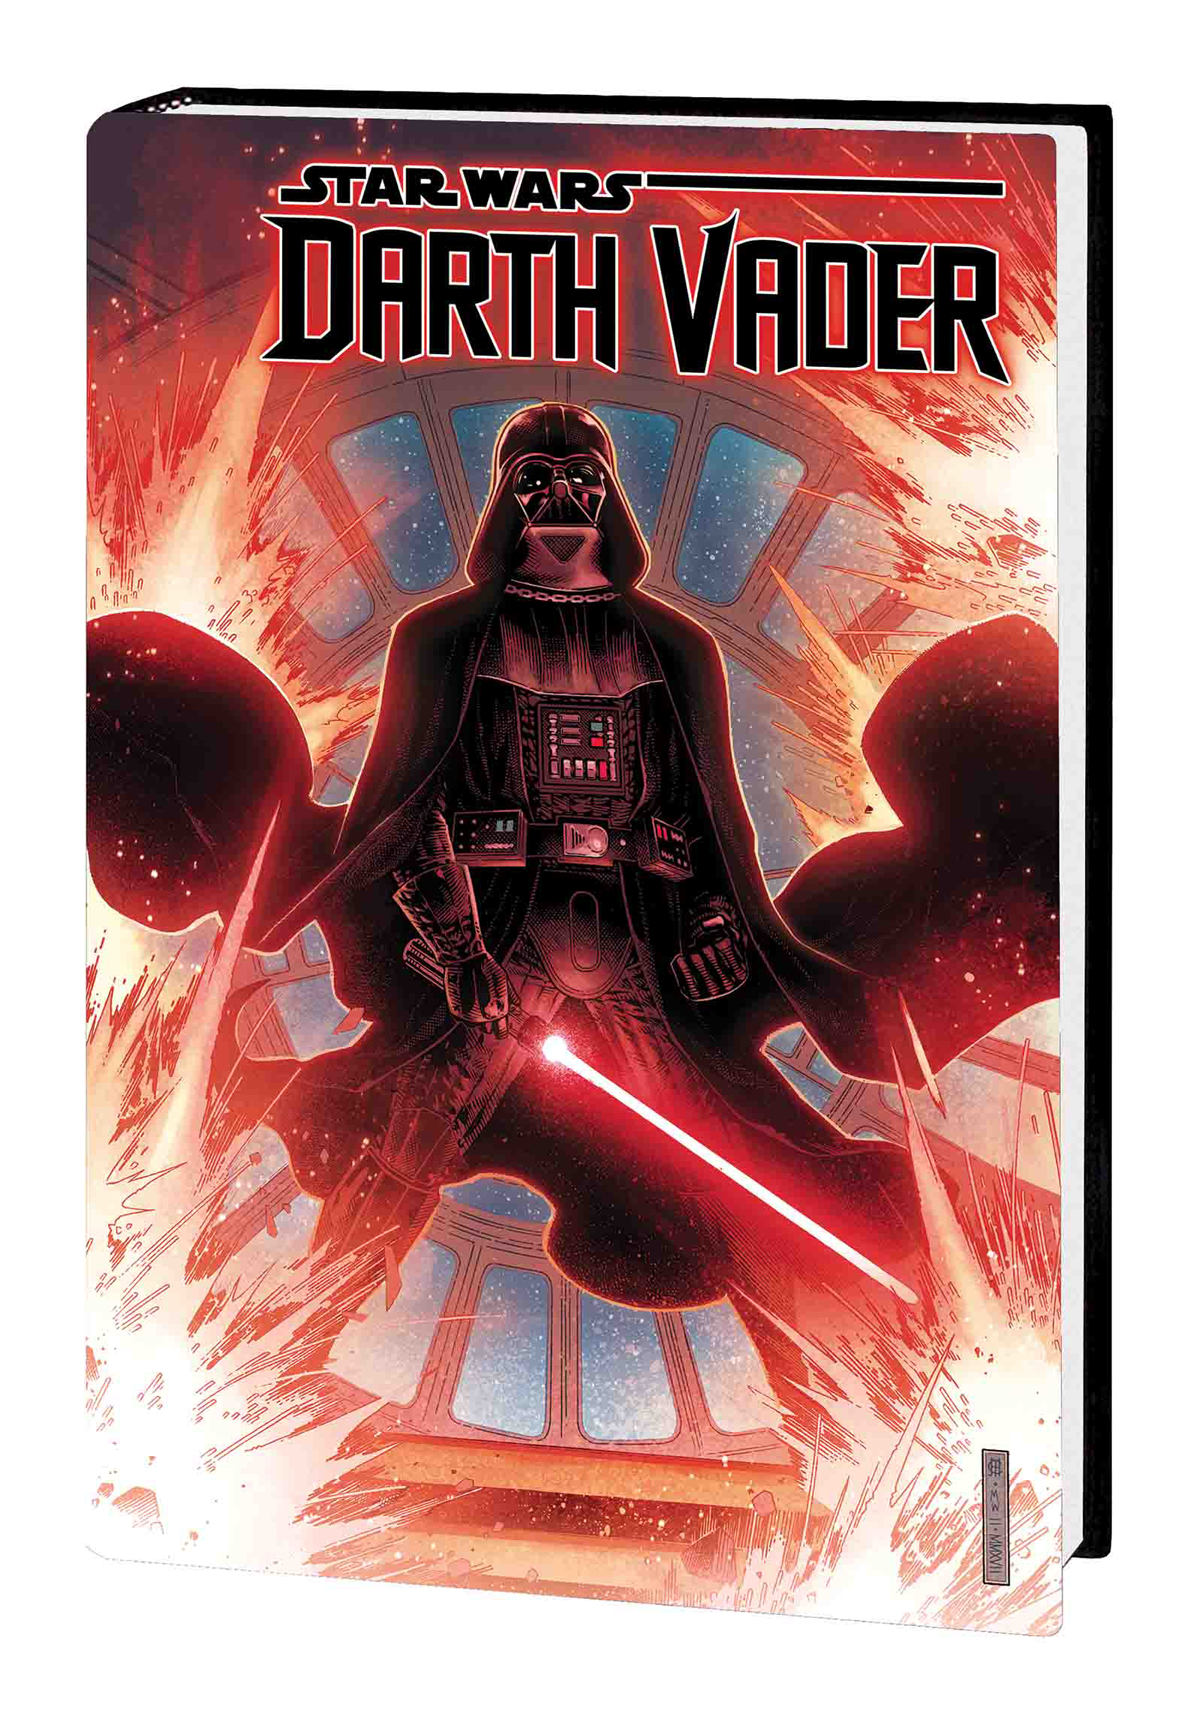 Star Wars Darth Vader (2017) Volume 1: Dark Lord of the Sith HC